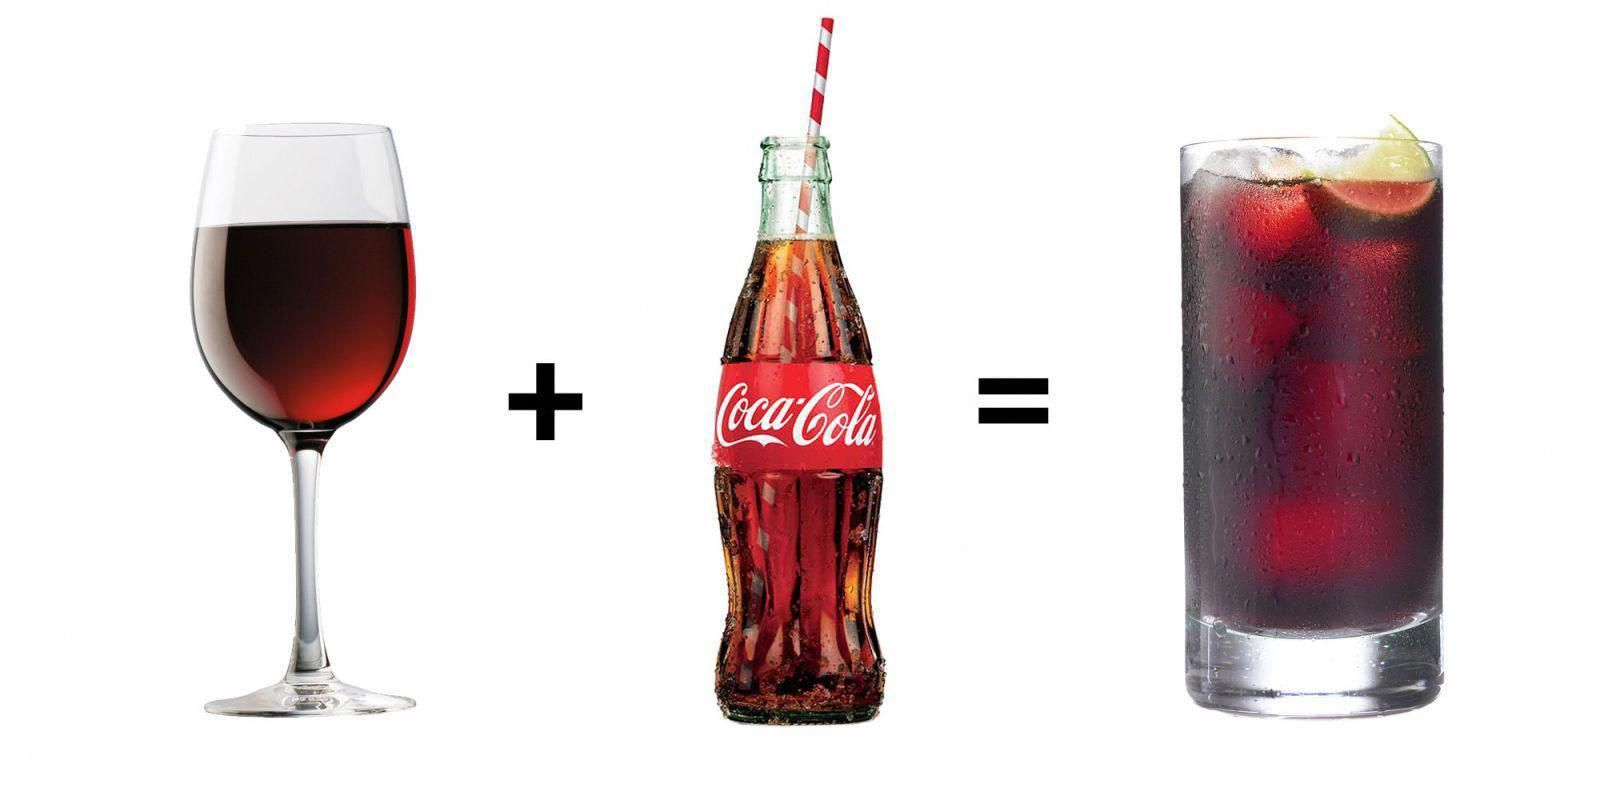 Let Me Explain To You Why Red Wine And Coke Is Actually Amazing In 2020 Red Wine Drinks Wine Drinks Red Wine Glasses